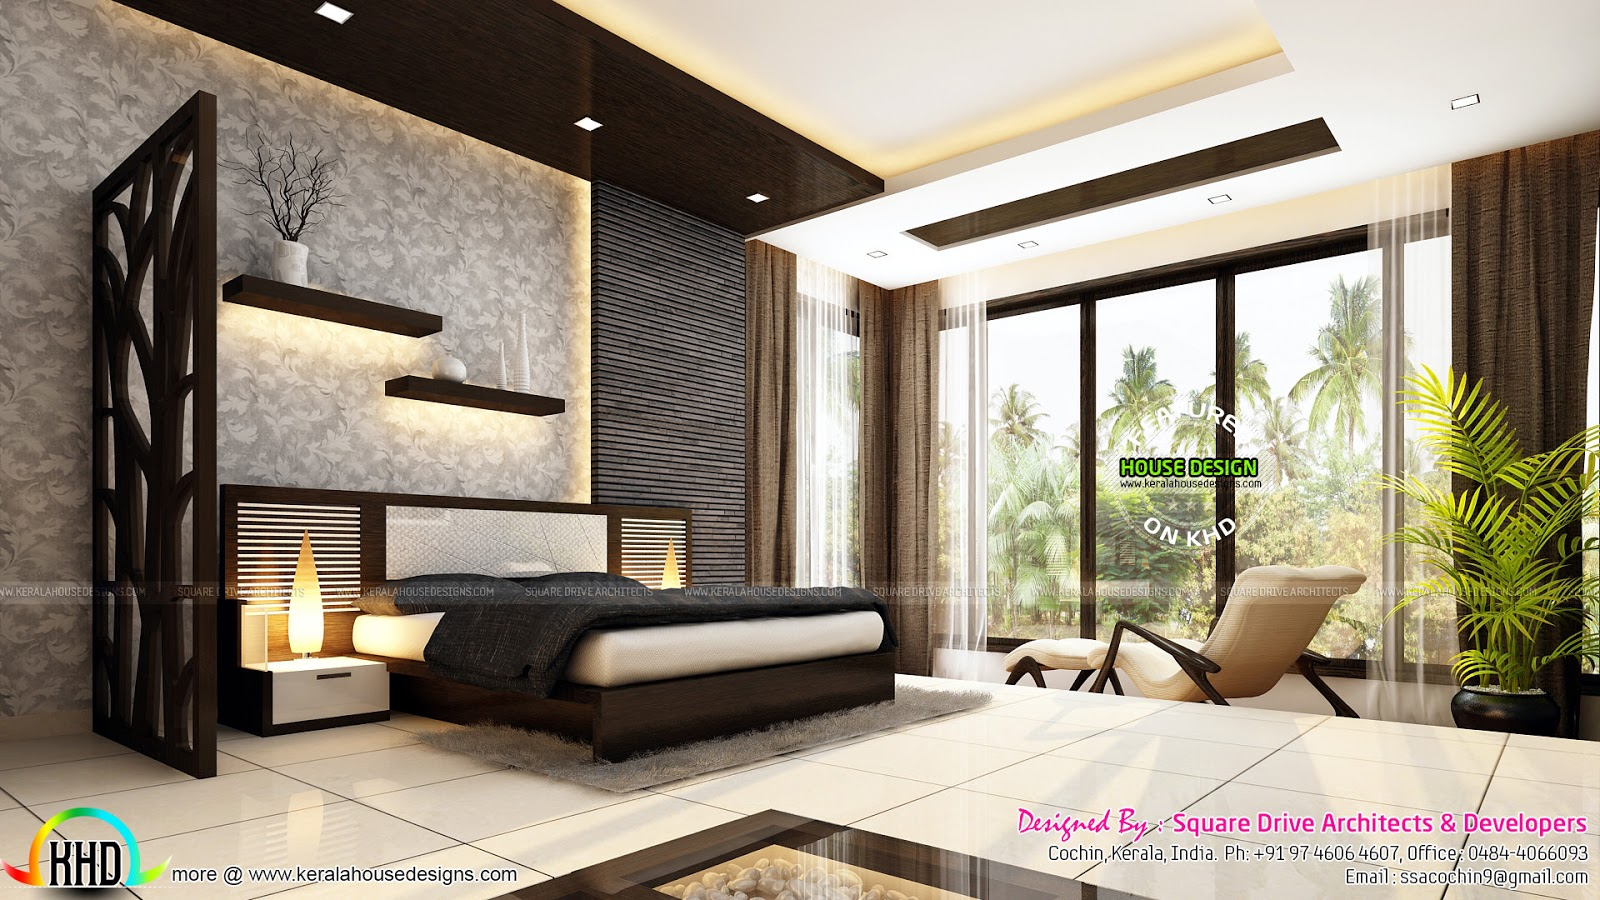 Very beautiful modern interior designs kerala home for Home interior design photo gallery